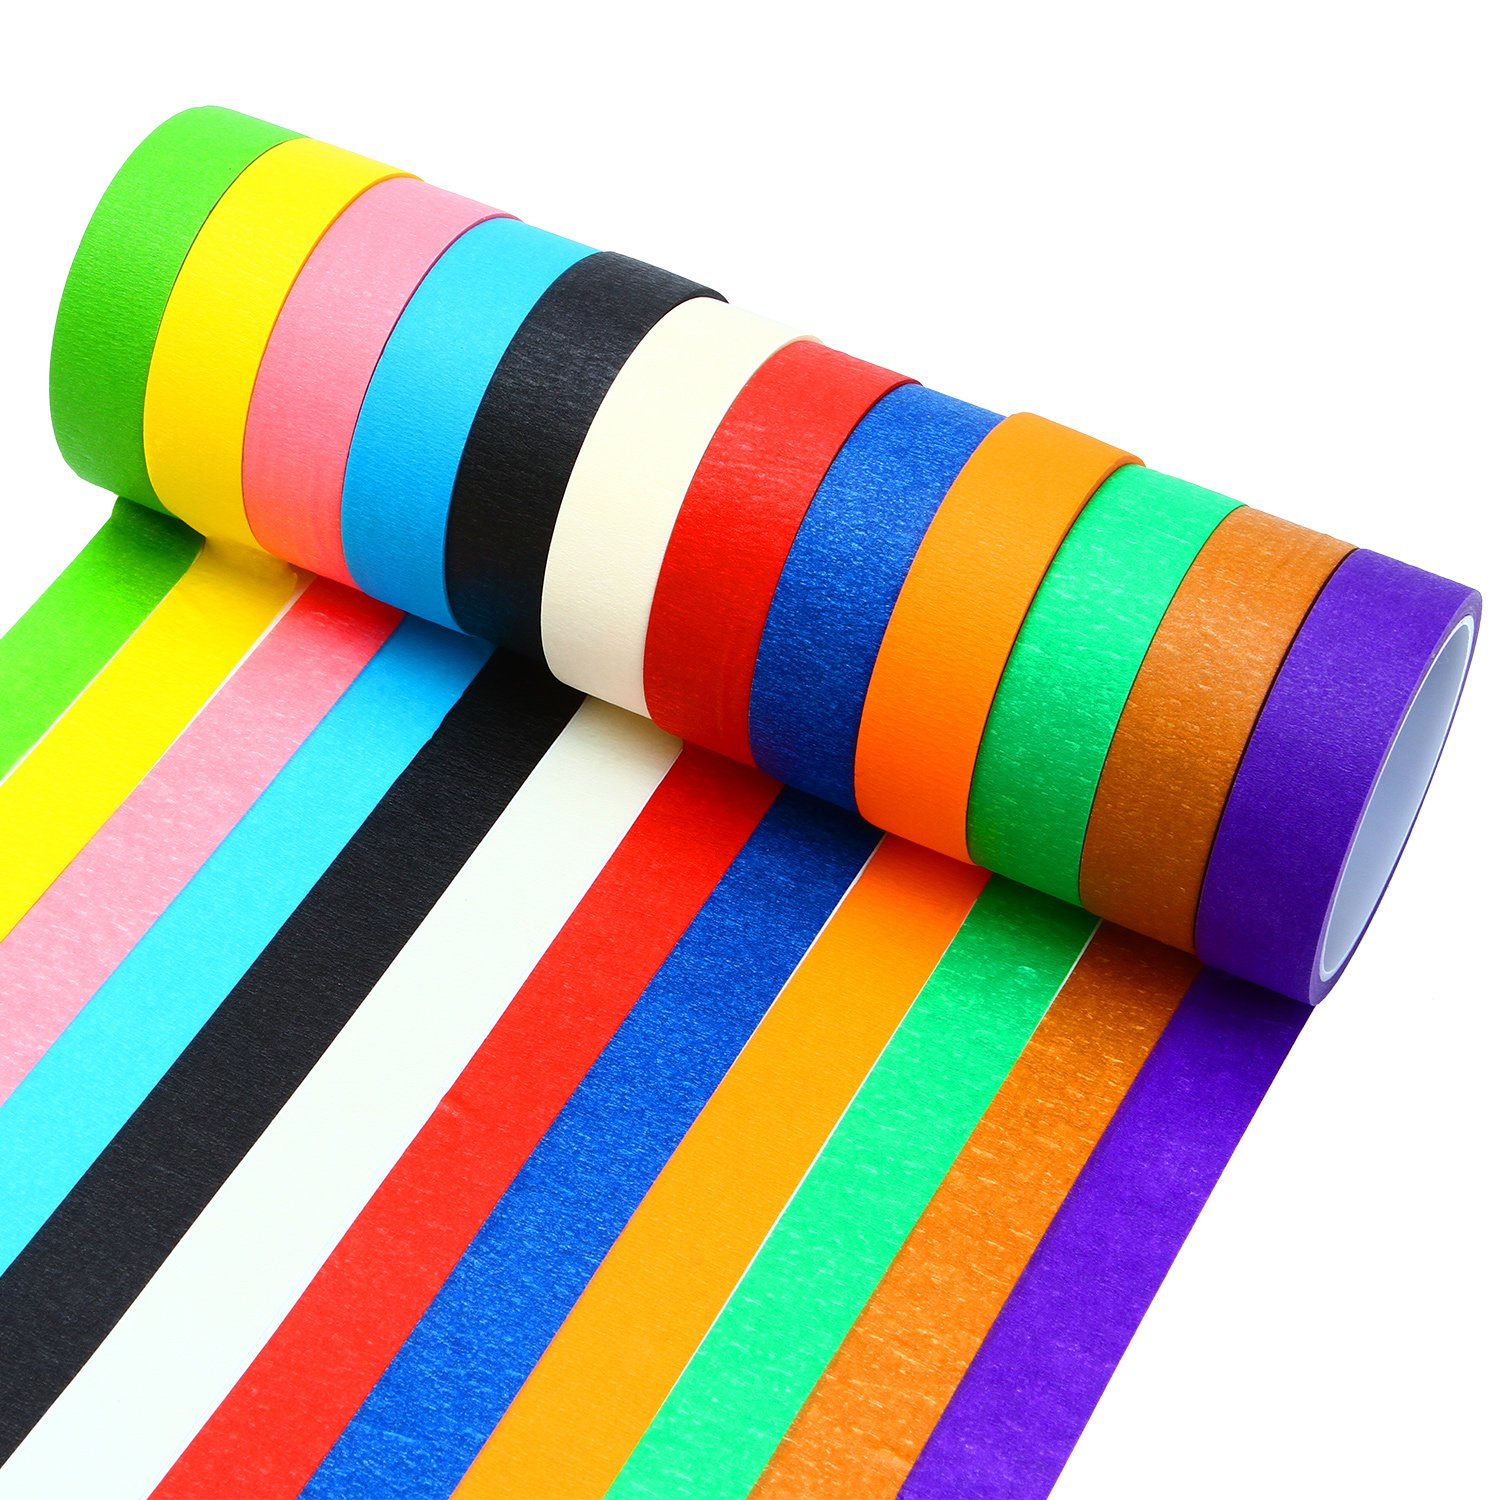 Resinta 12 Pieces Colored Masking Tape Rainbow Masking Tape Labelling Tape Graphic Art Tape Roll for Fun DIY Arts Supplies Kit, 12 Colors.